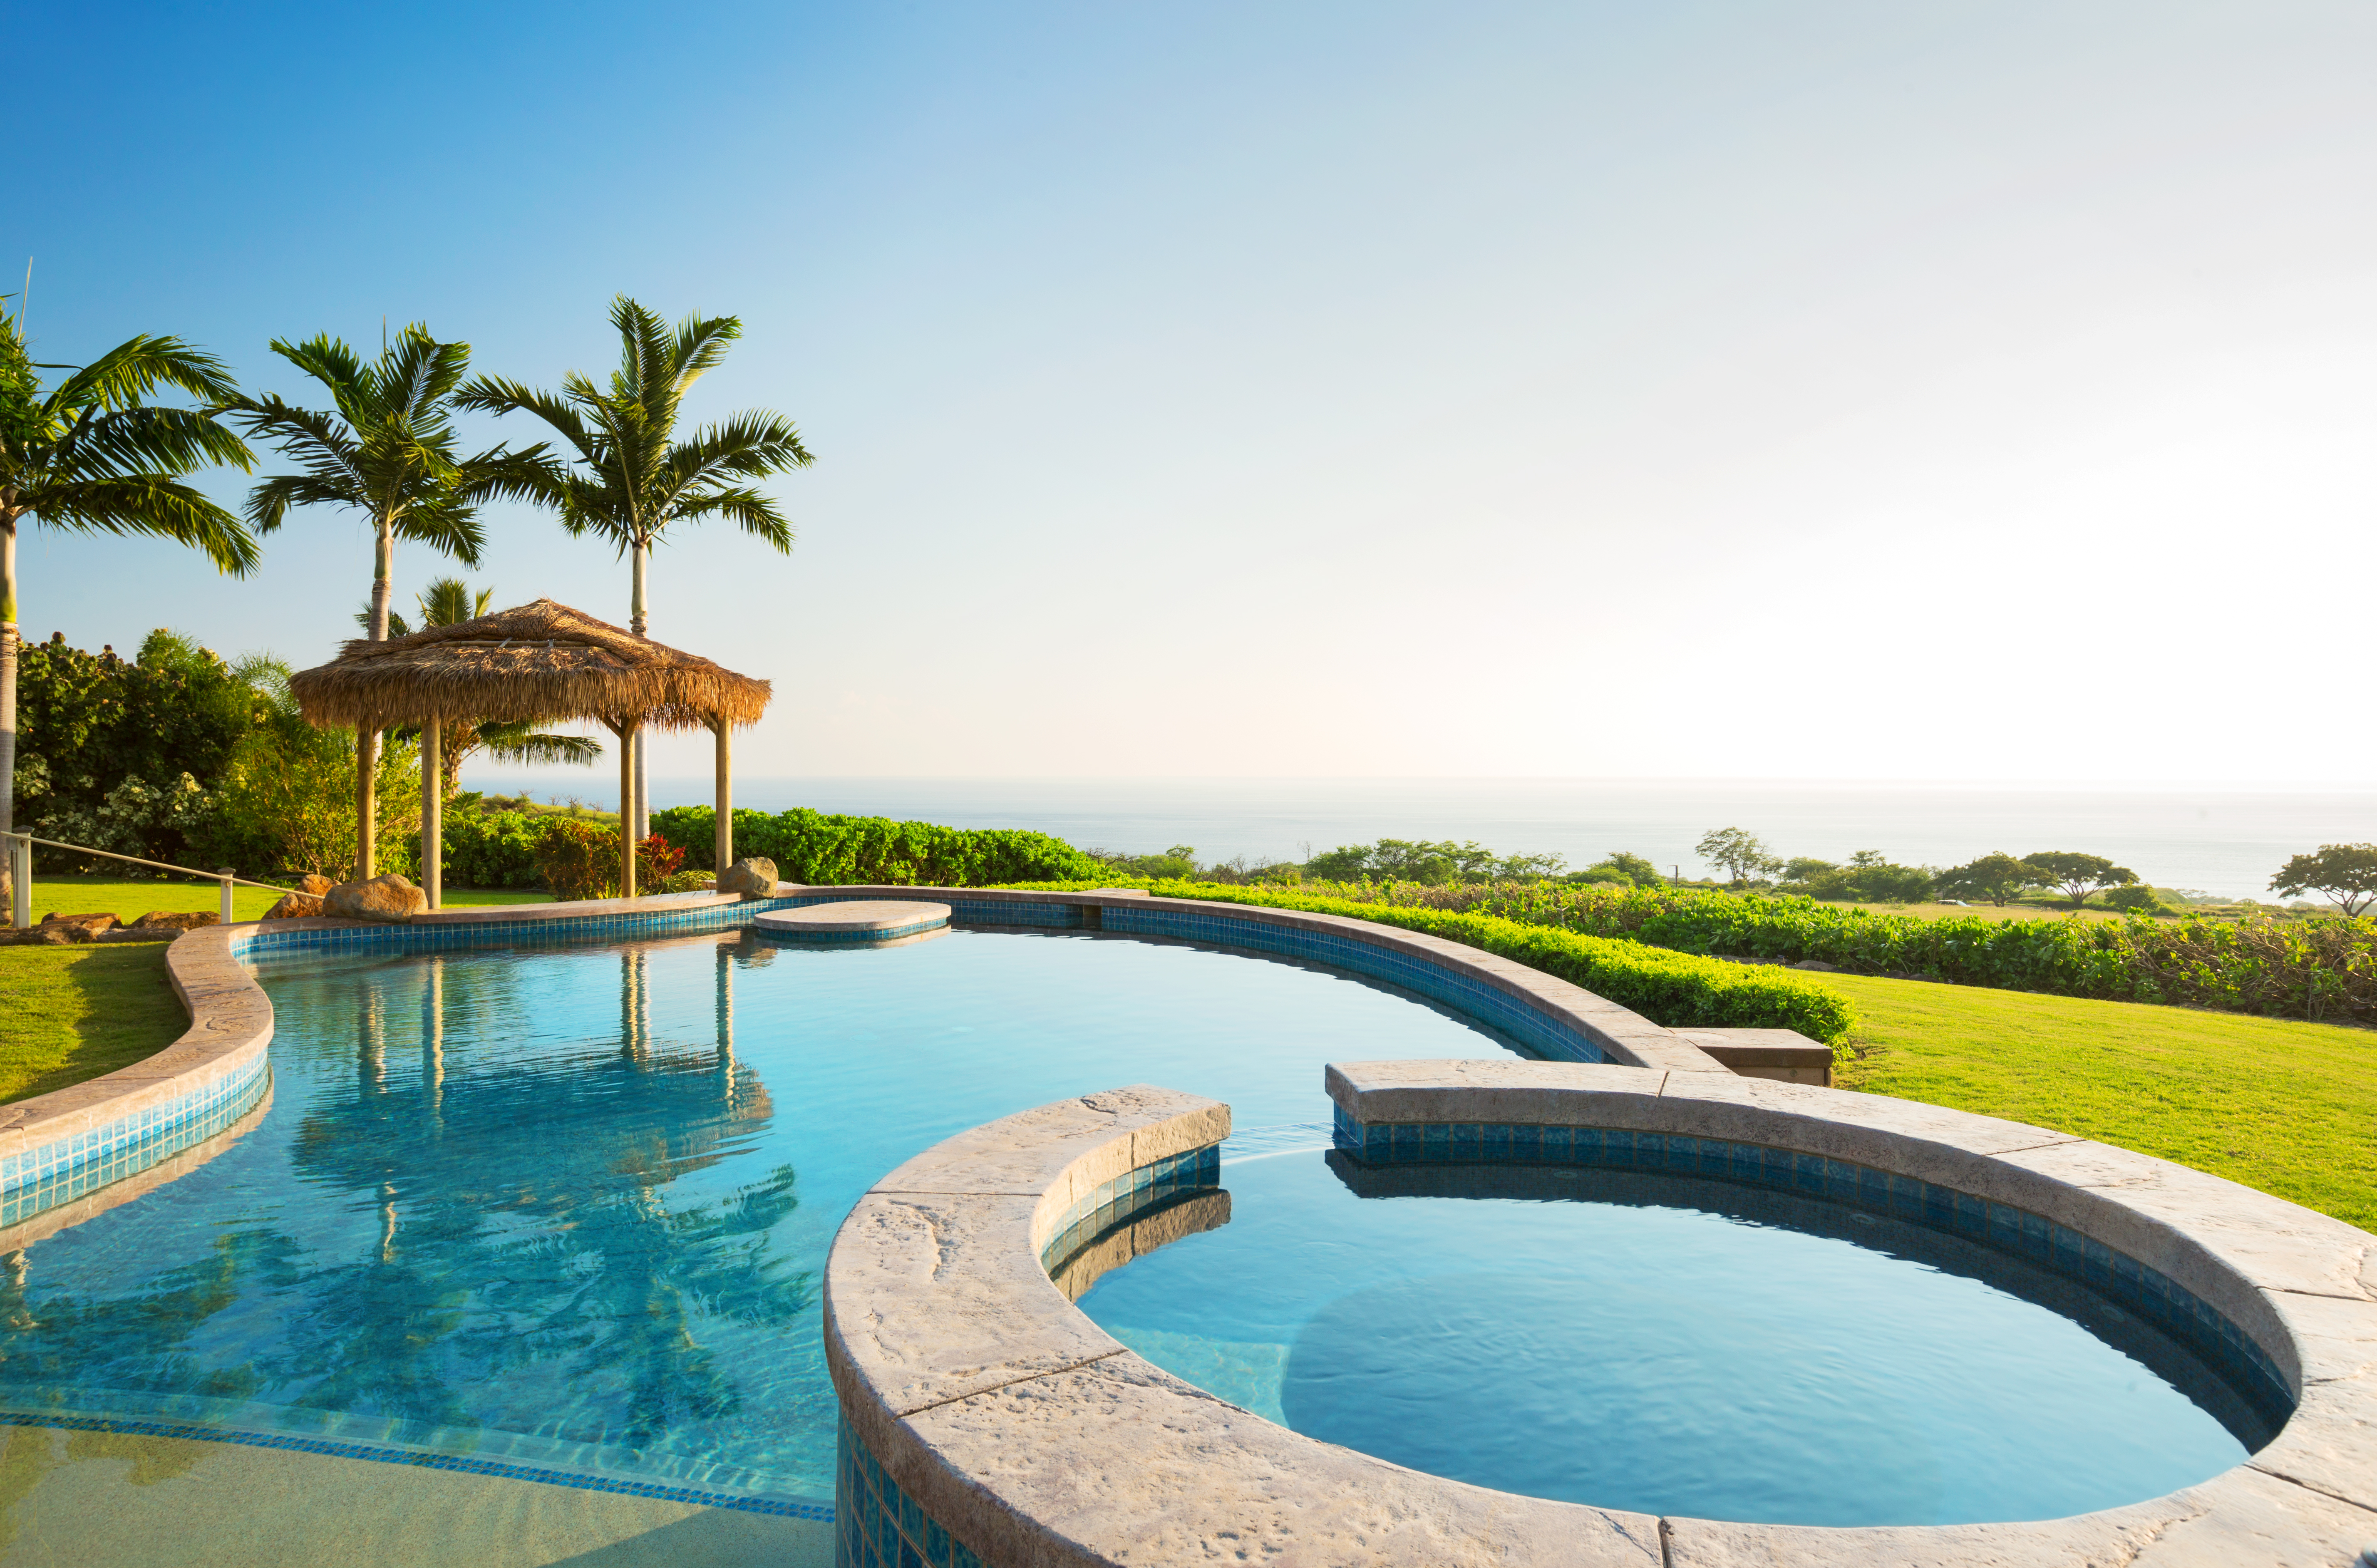 Swimming pool at luxury tropical resort – talkabouthospitality